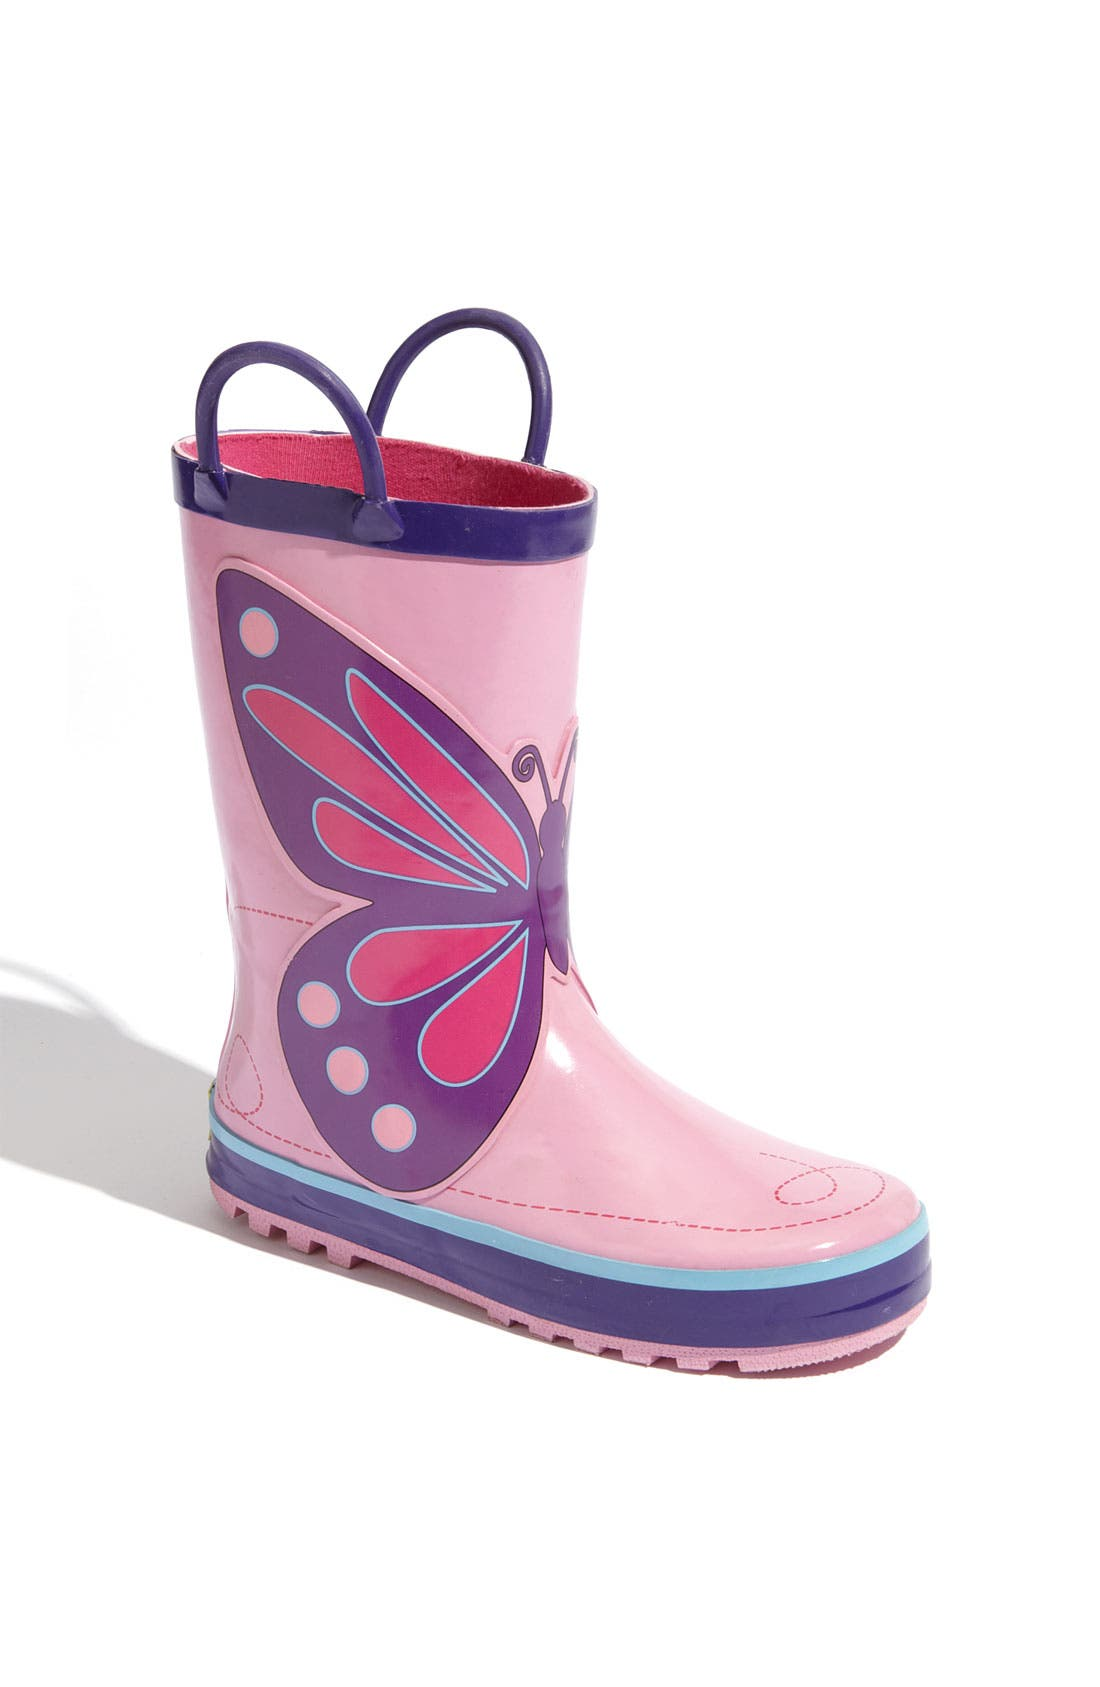 Alternate Image 1 Selected - Western Chief 'Wings' Rain Boot (Walker, Toddler & Little Kid)